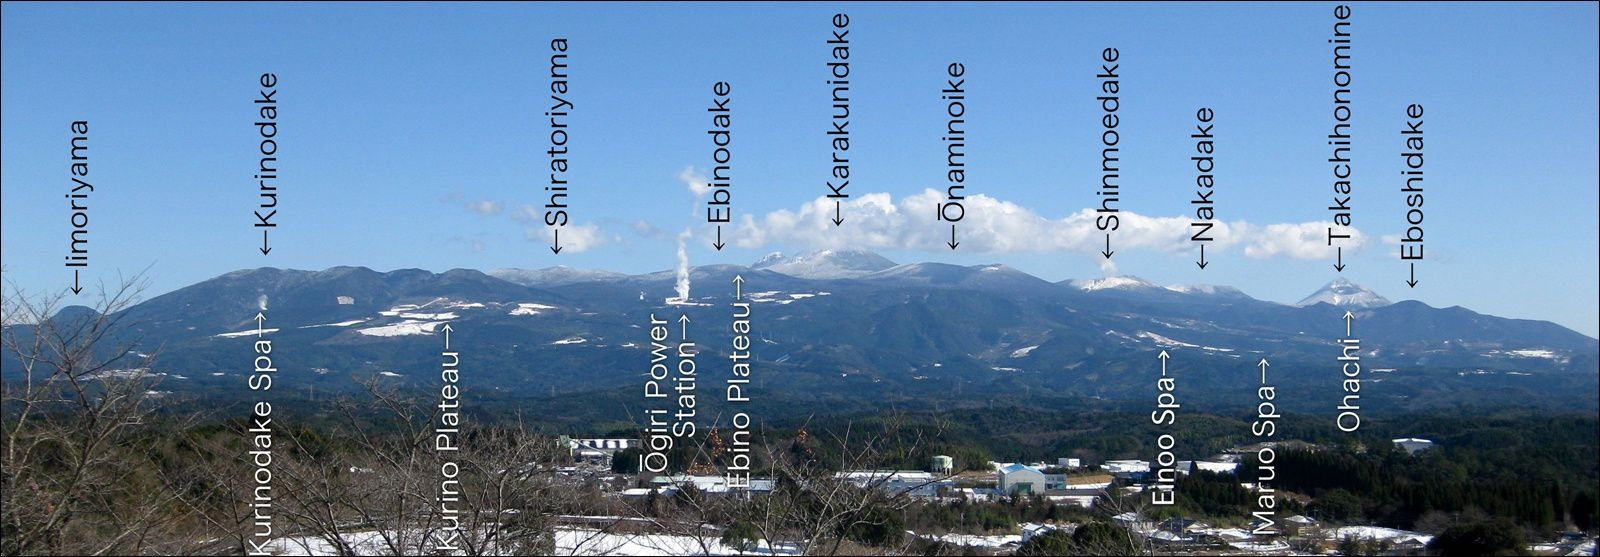 Location of the Ebino Castle within the Kirishima complex - in the center (white letters) and on the left in the photo in relation to the Shinmoedake - Doc © Ray_go, wikipedia